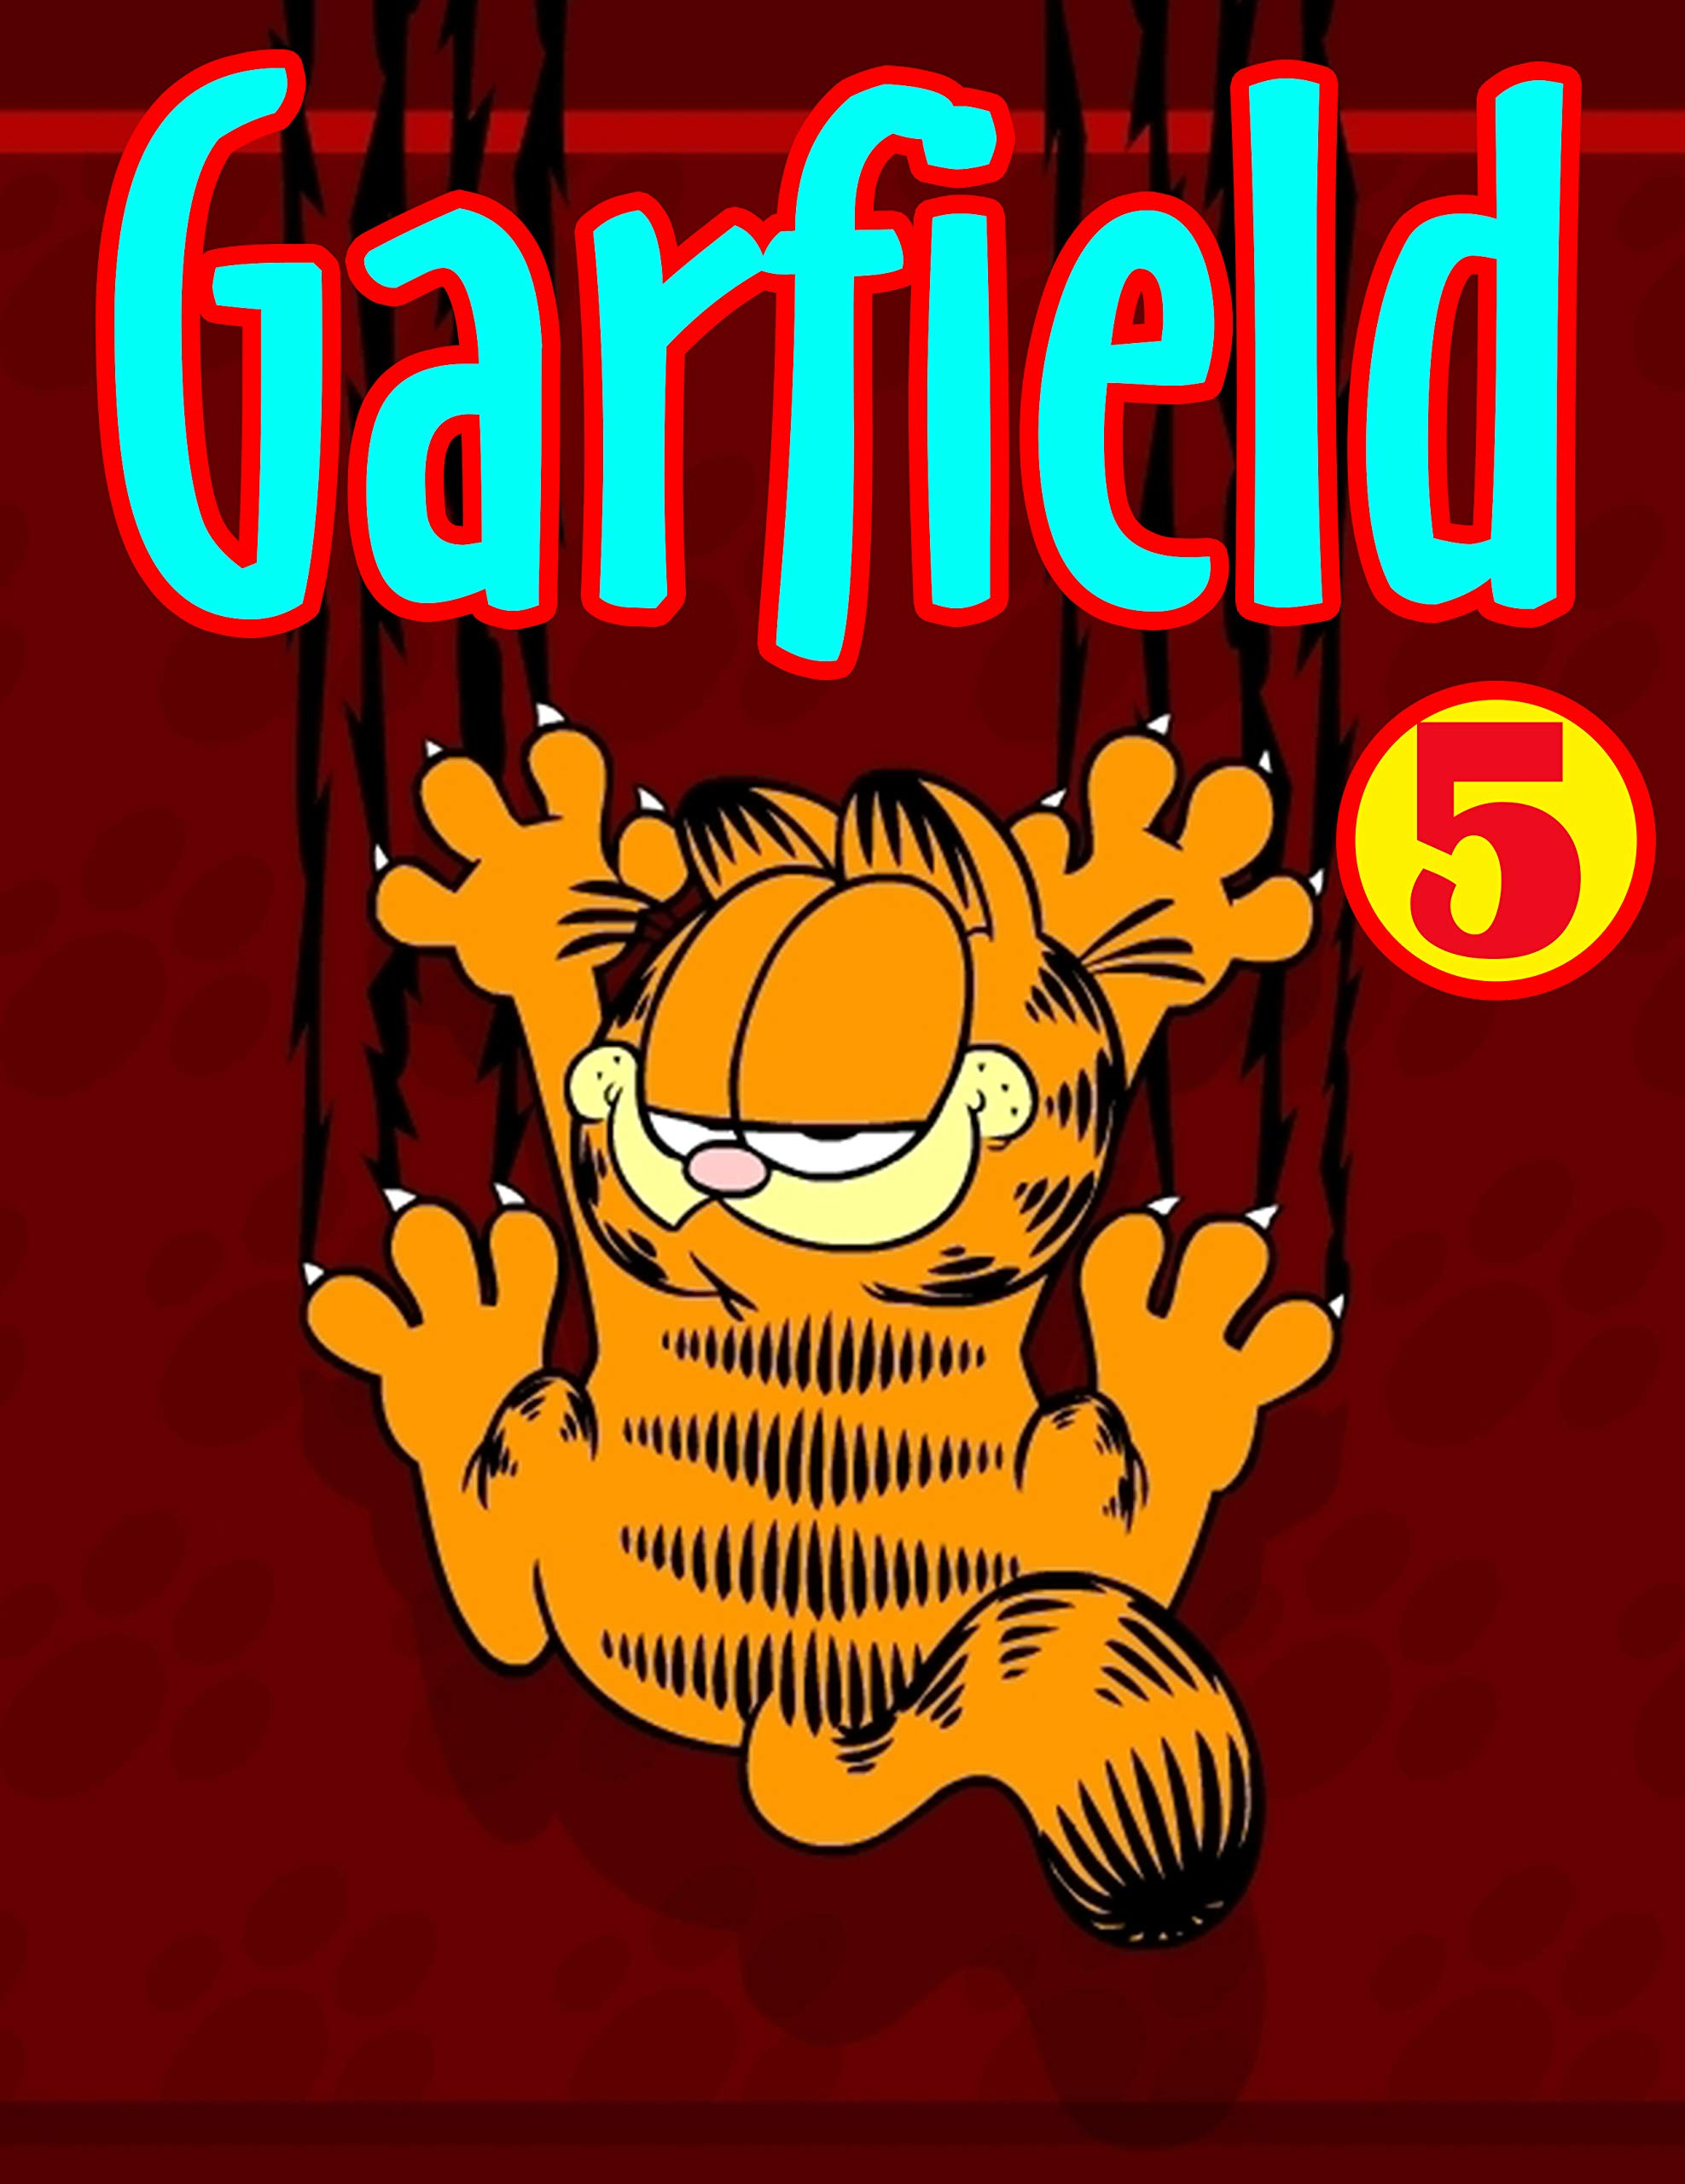 Childrens Books Full Series Garfield Funny: Fat Cat Garfield Limited Edition Book 5